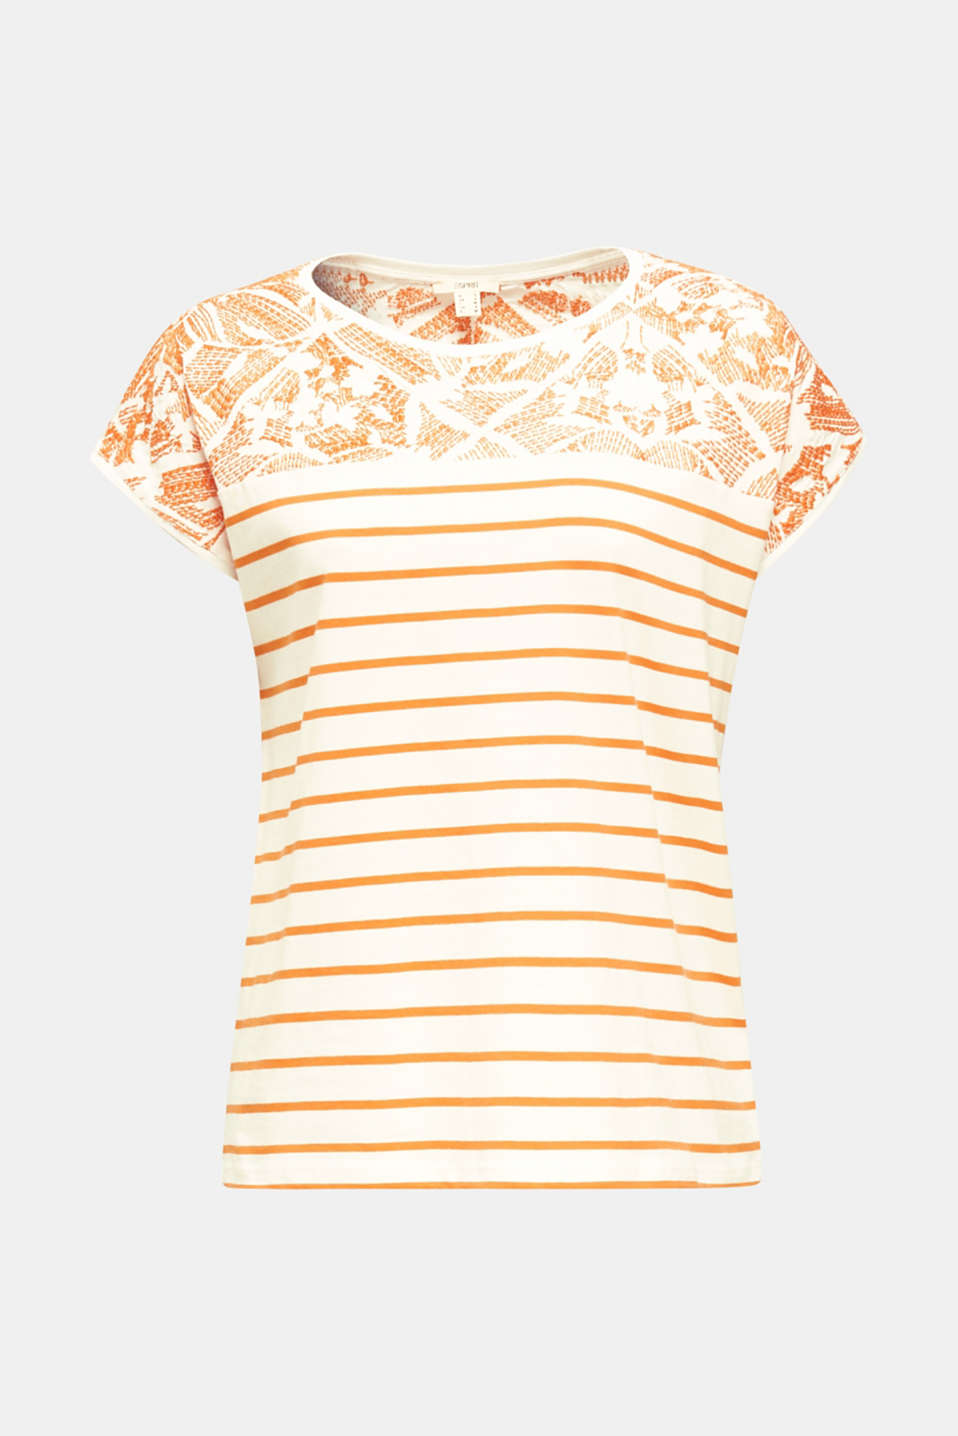 Embroidered top, organic cotton, RUST ORANGE, detail image number 5